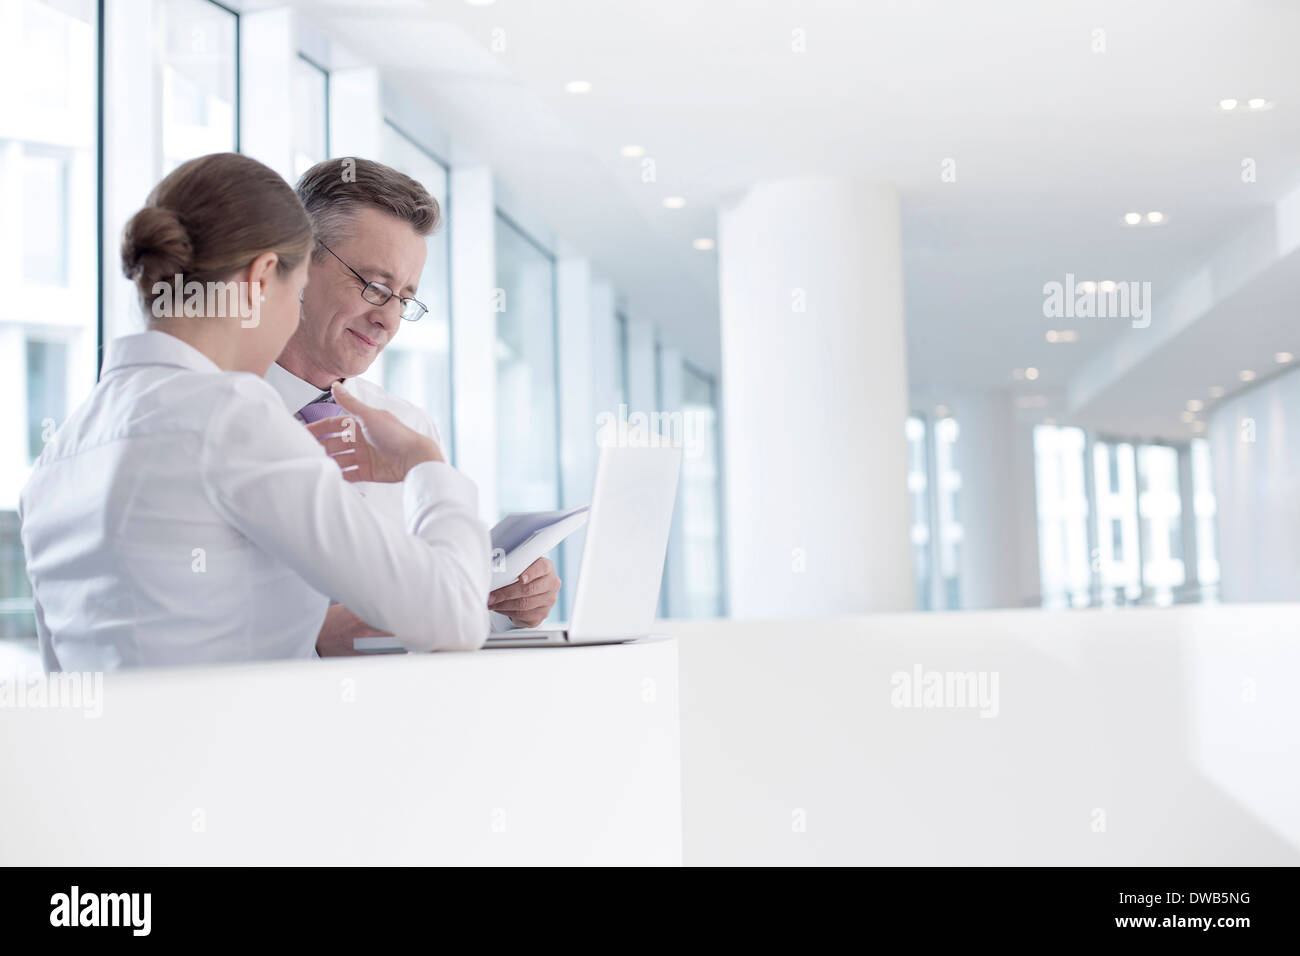 Business people railing in office Photo Stock